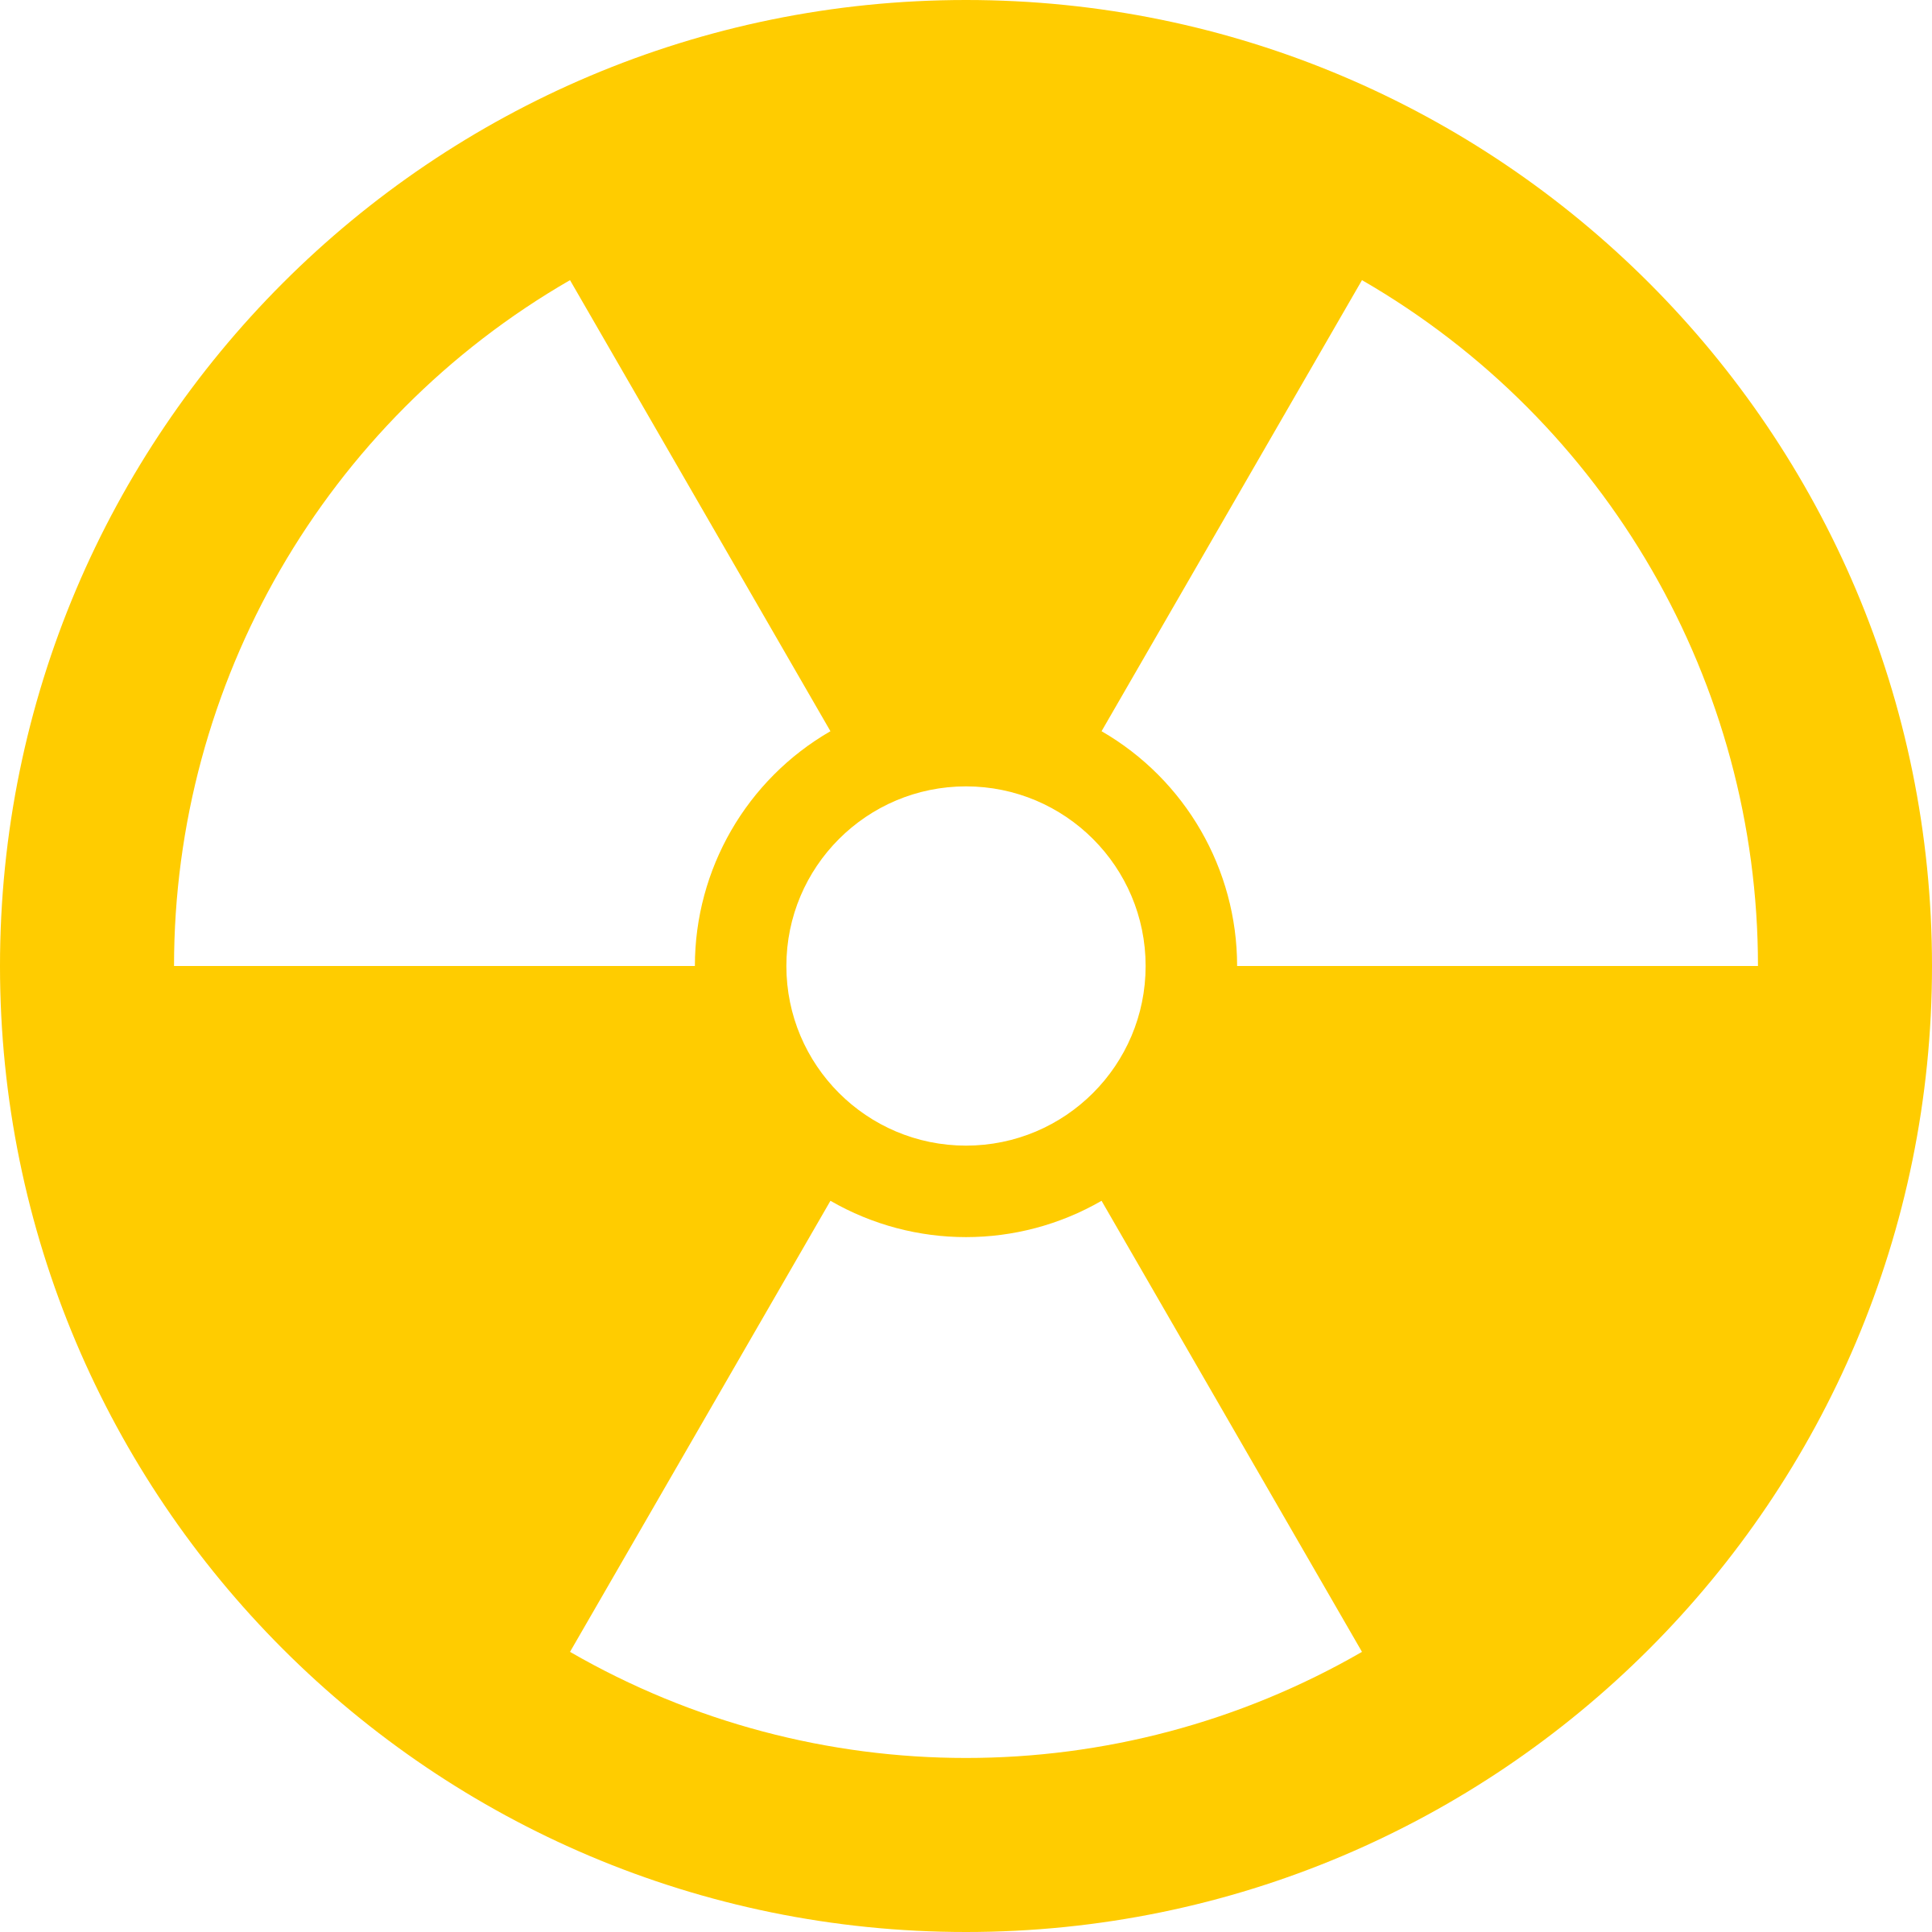 Sign svg radioactive. Transparent icon icons png